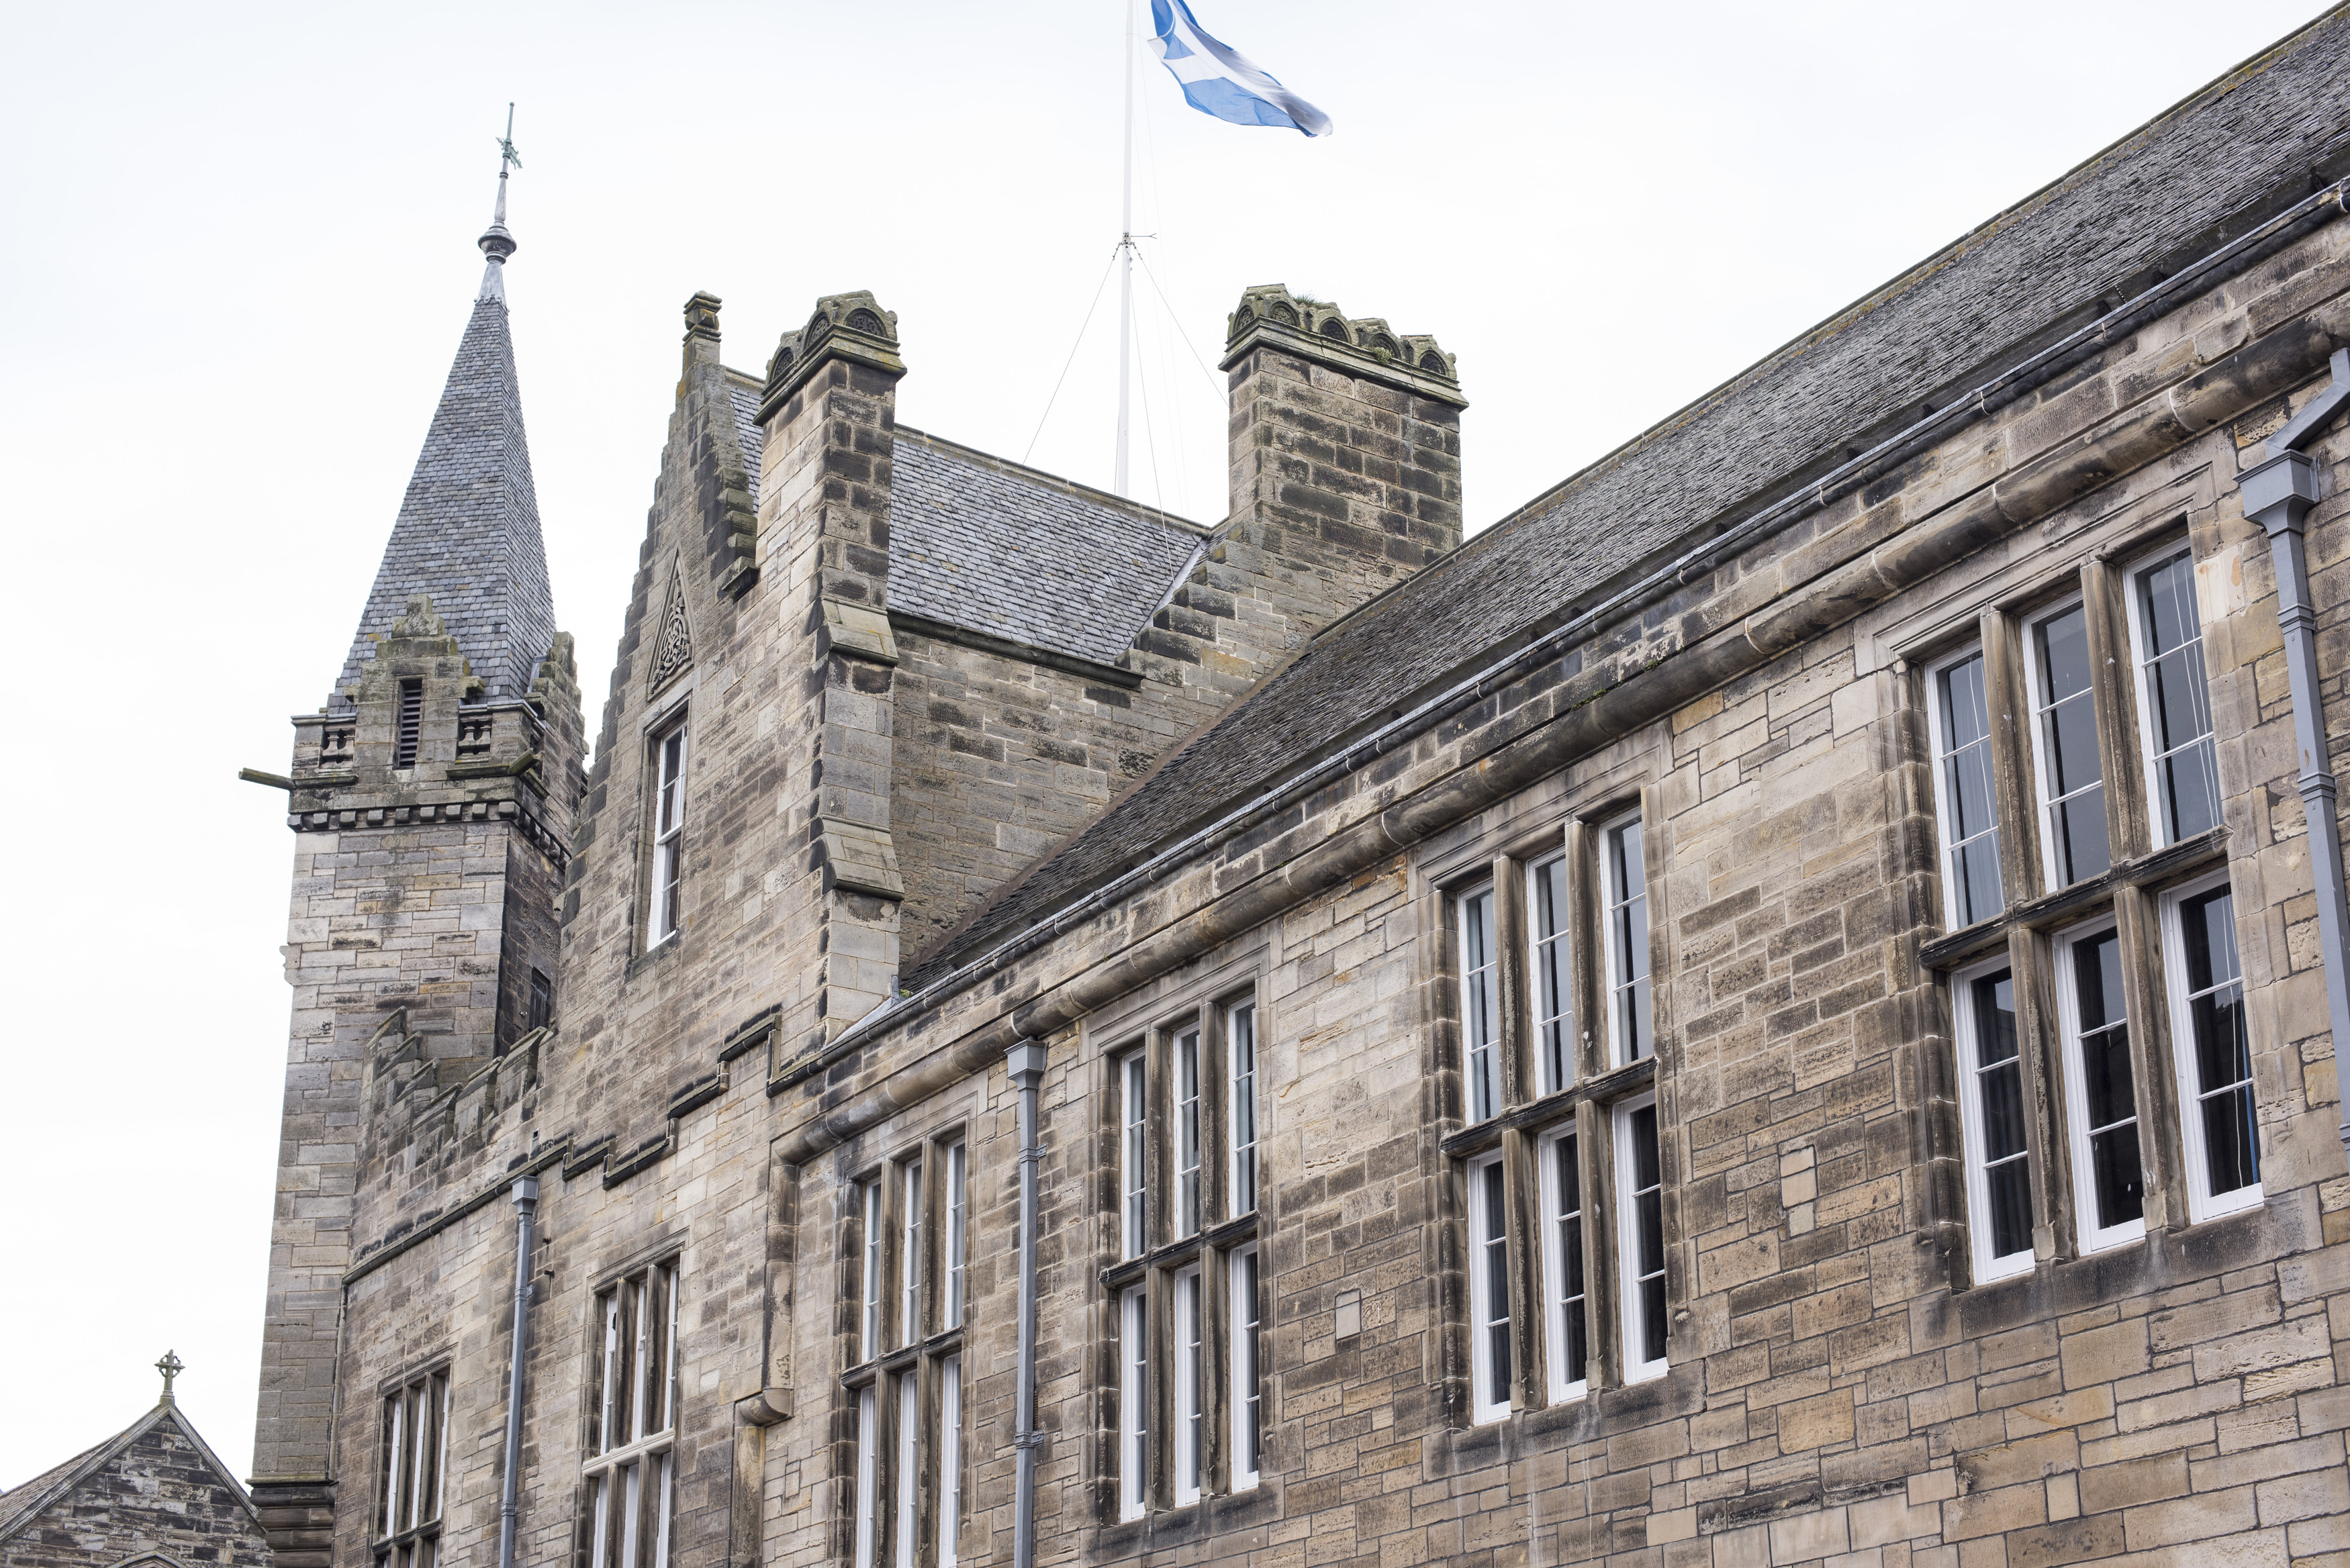 Close up of second floor of town hall with flag waving at top in Saint Andrews, Scotland